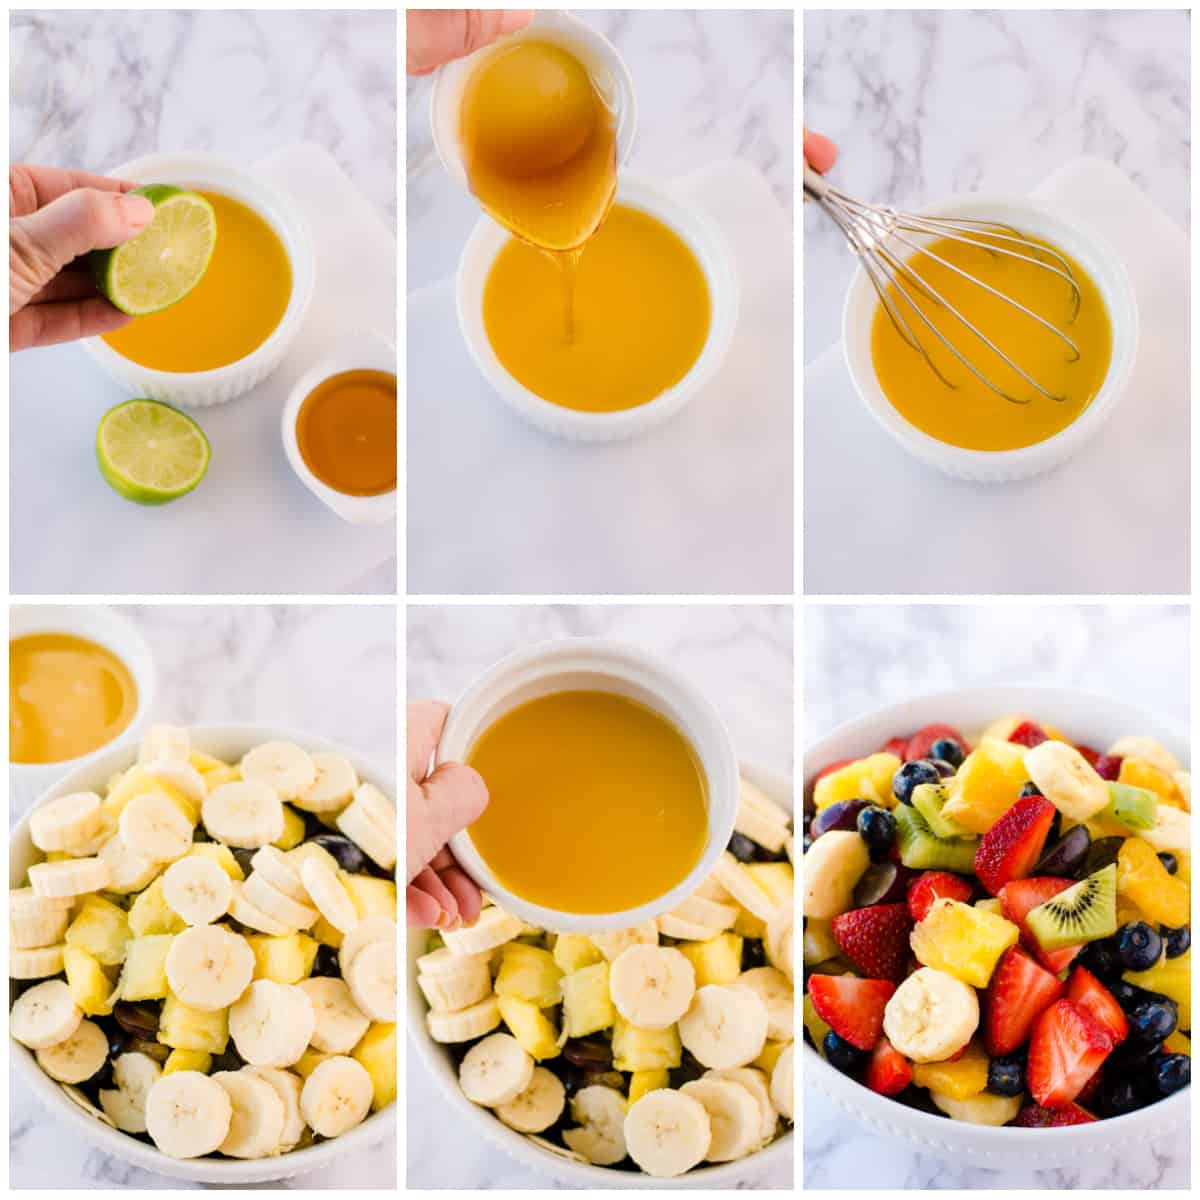 Step by step photos on how to make a Fruit Salad Recipe